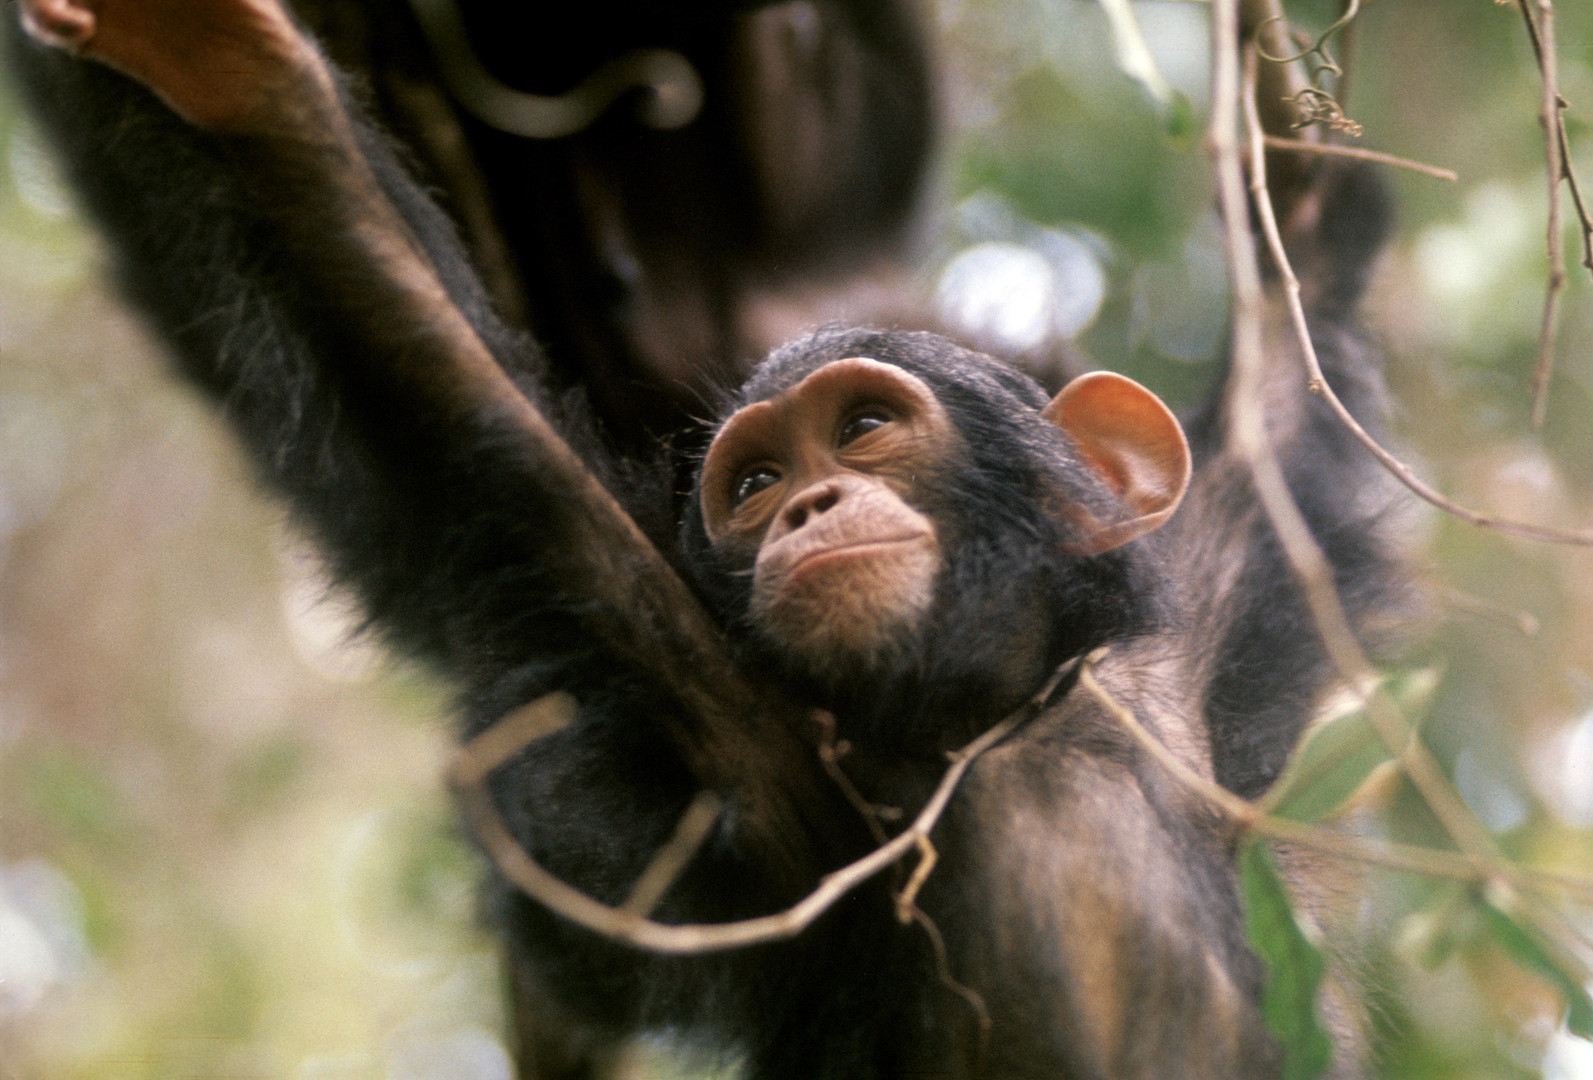 Young chimp swinging through the trees at Gombe. Photo by Grant Heidrich, 1974